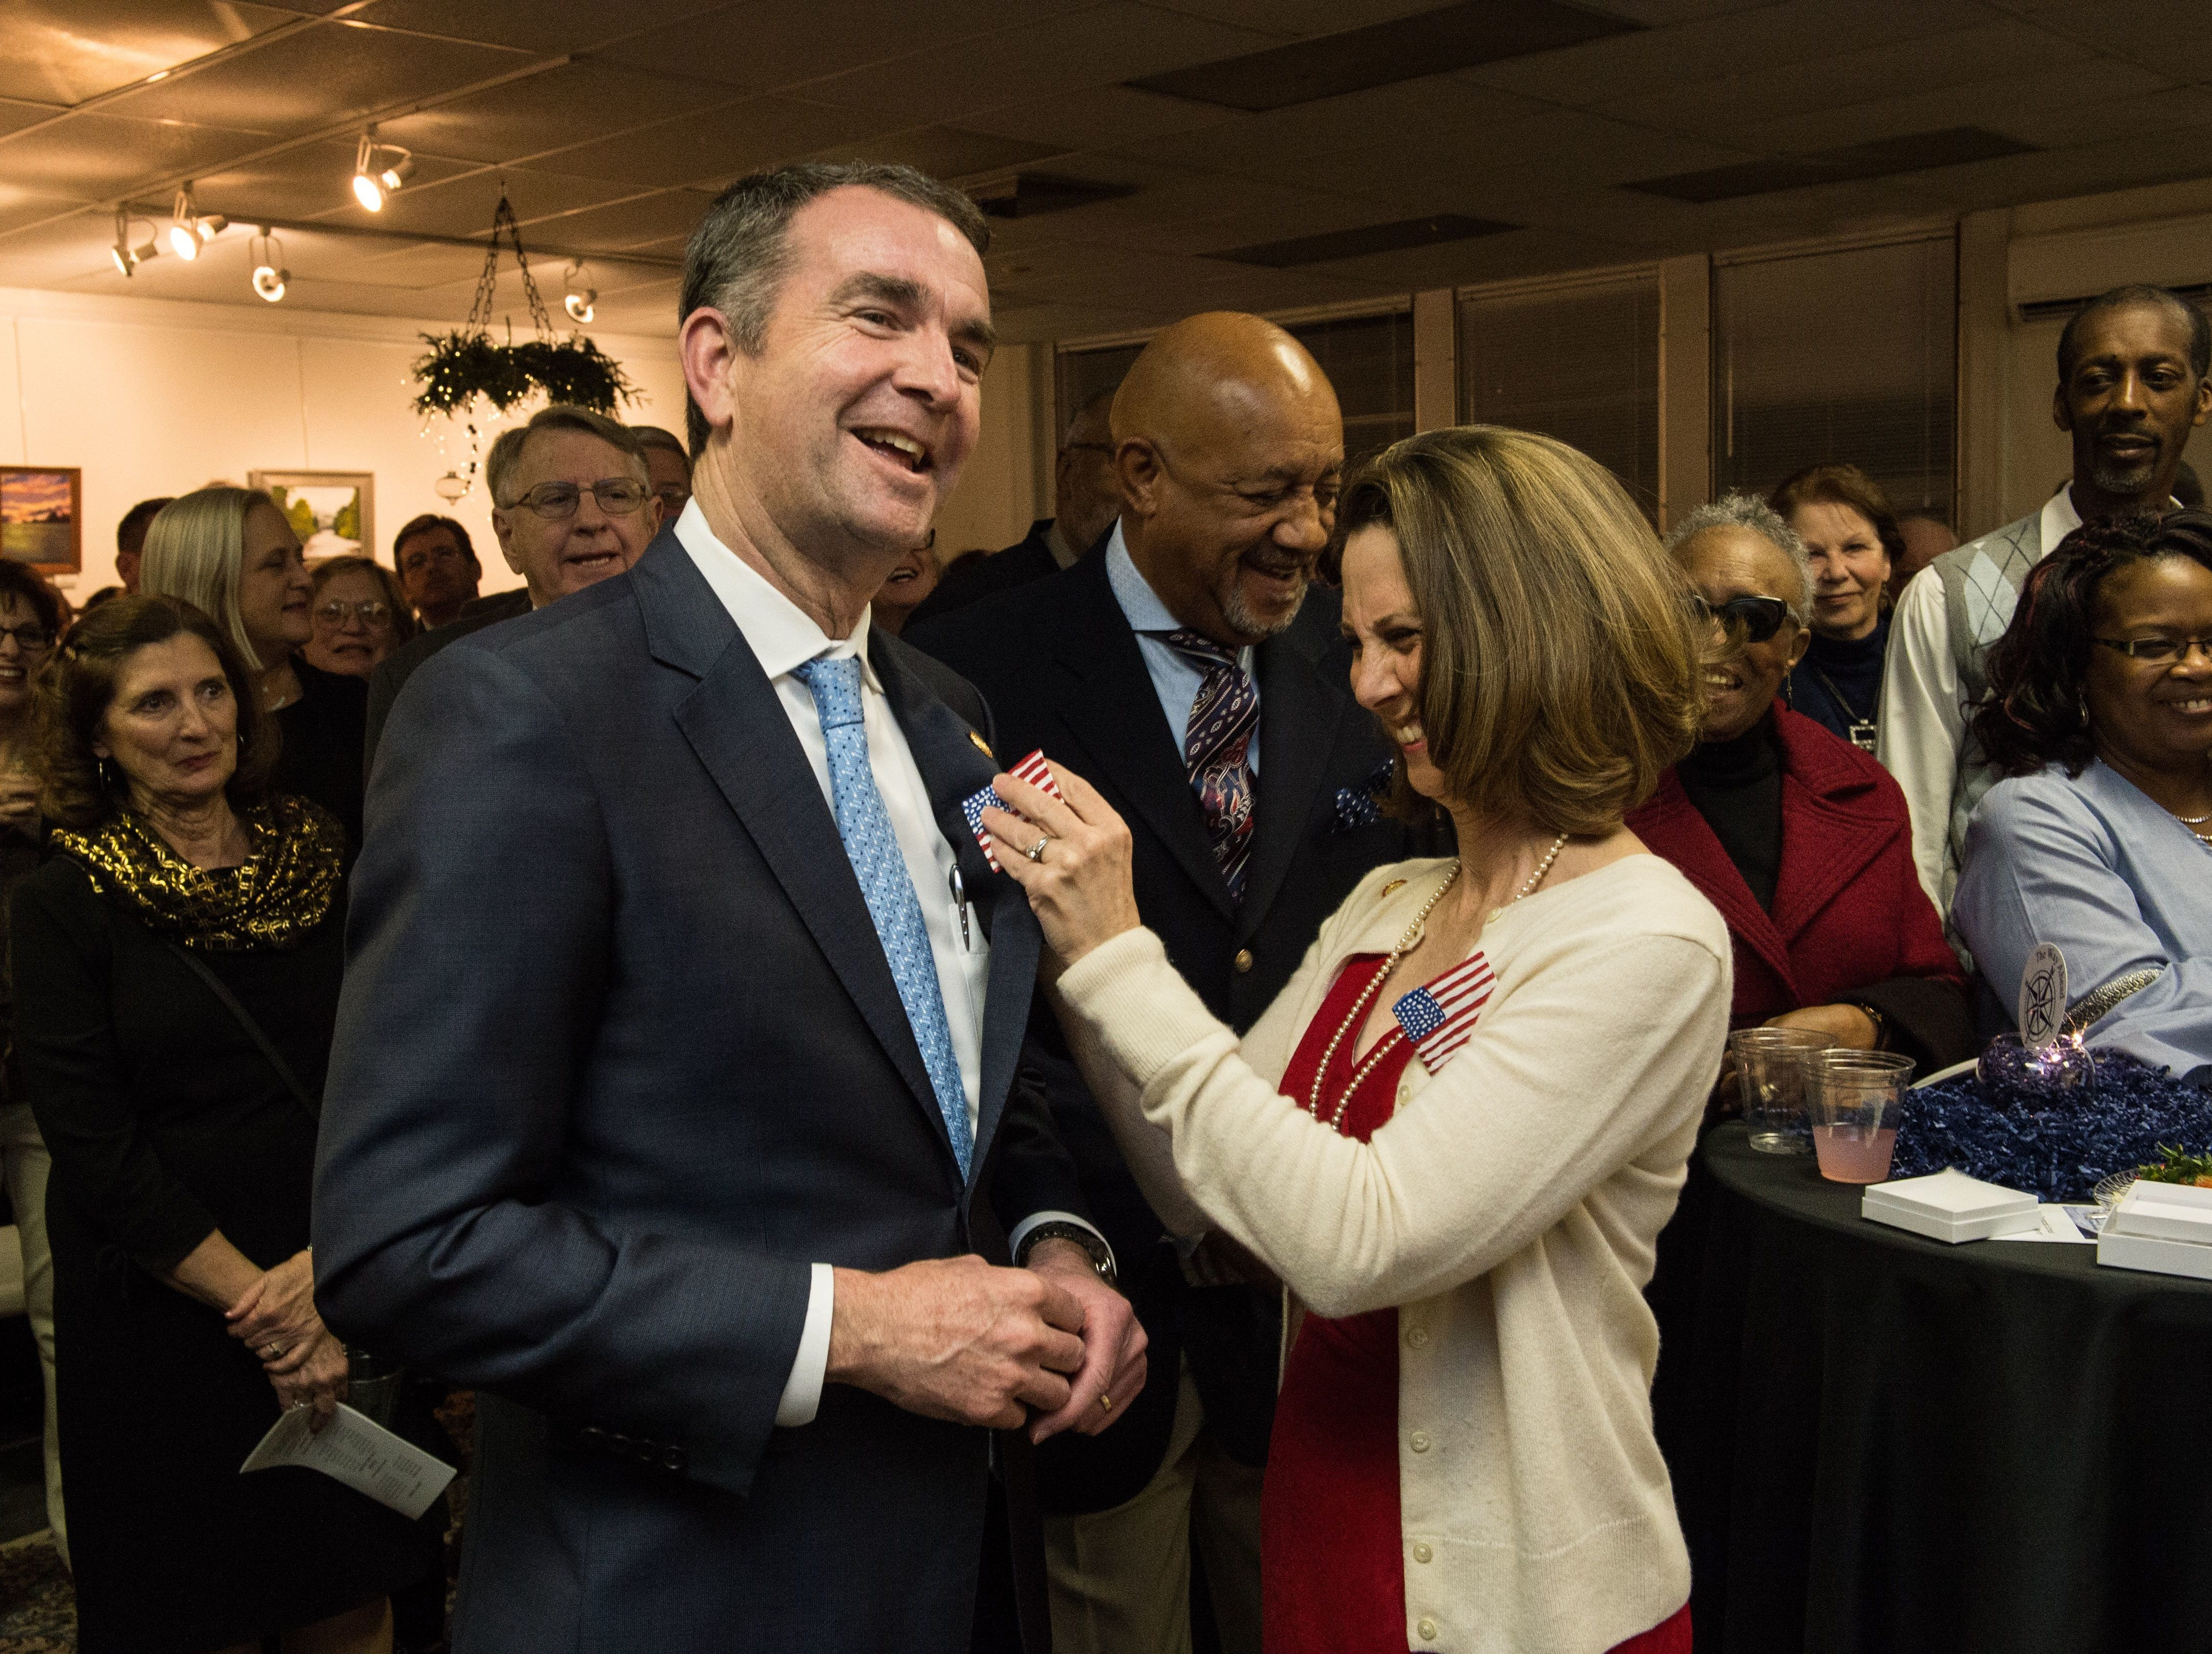 Virginia first lady Pamela Northam pins a paper mache flag on Gov. Ralph Northam during a fundraising gala at the Historic Onancock School on Saturday, Feb. 3, 2018.